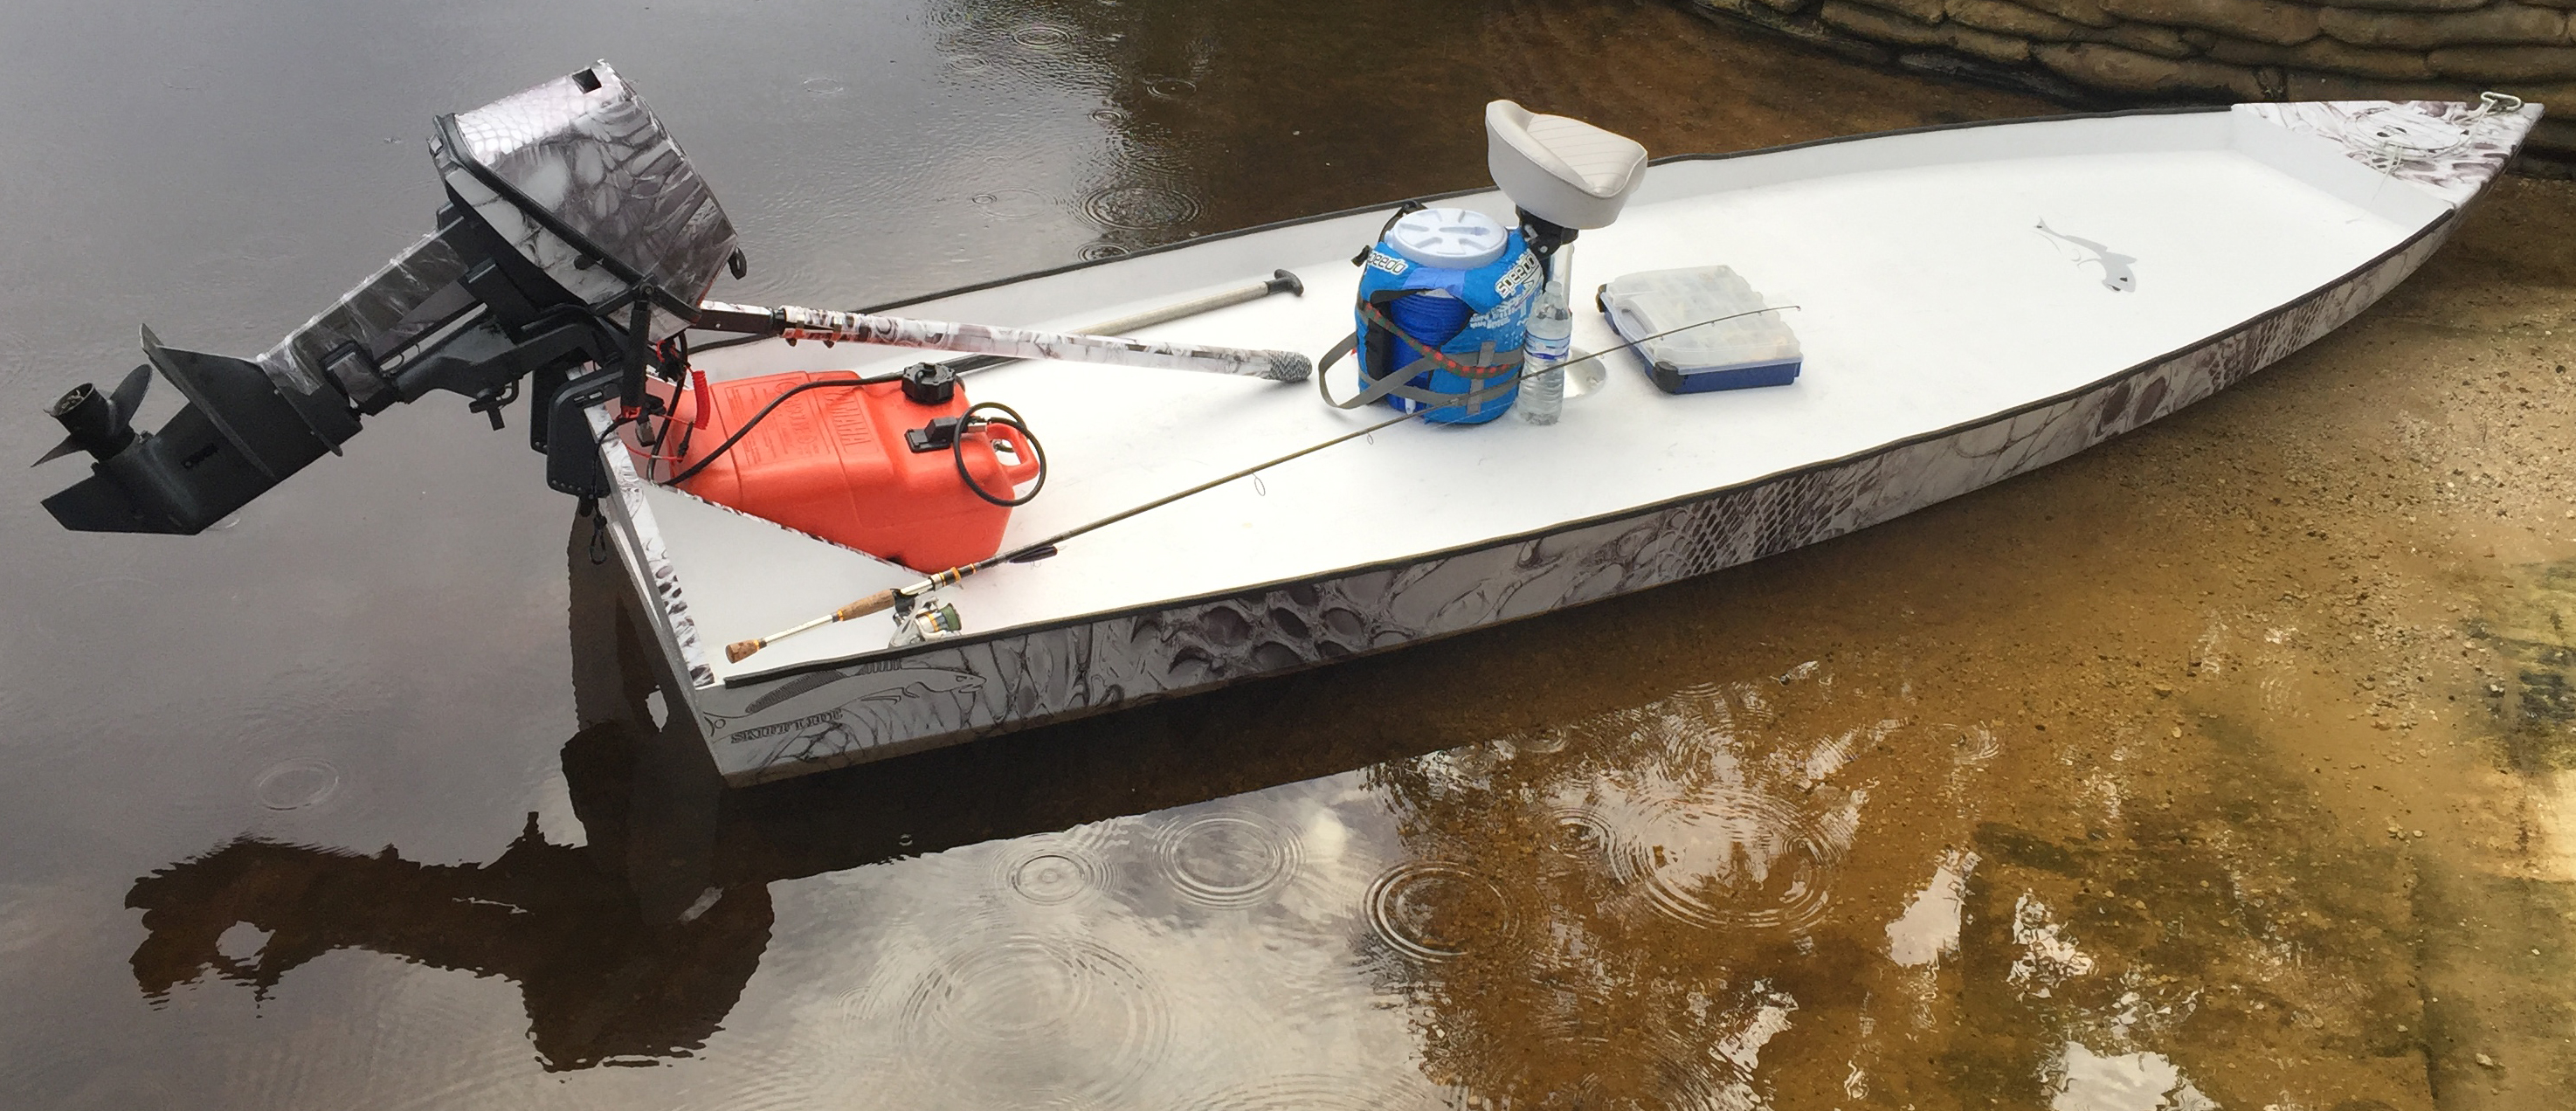 SkiffLife's SK14 Build, the latest from the Skiff Forge.